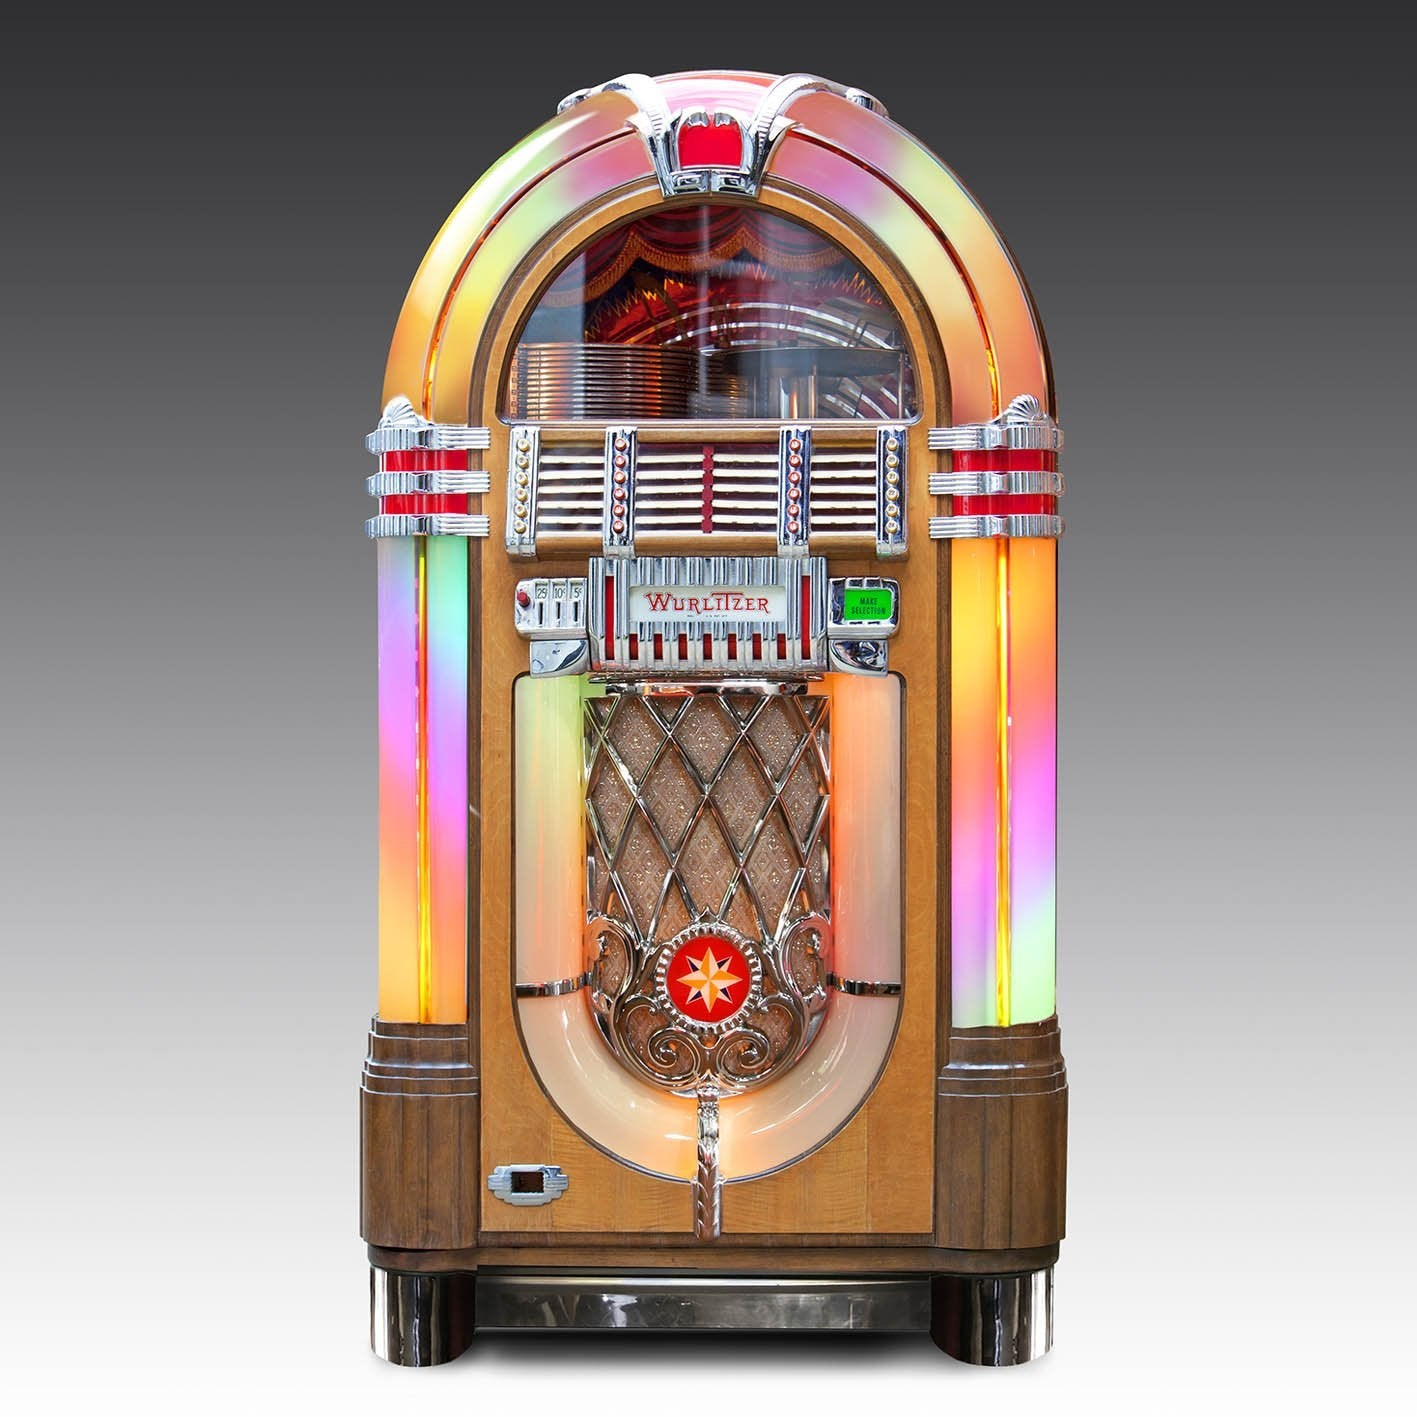 Original 1940's Wurlitzer 1015 Jukebox